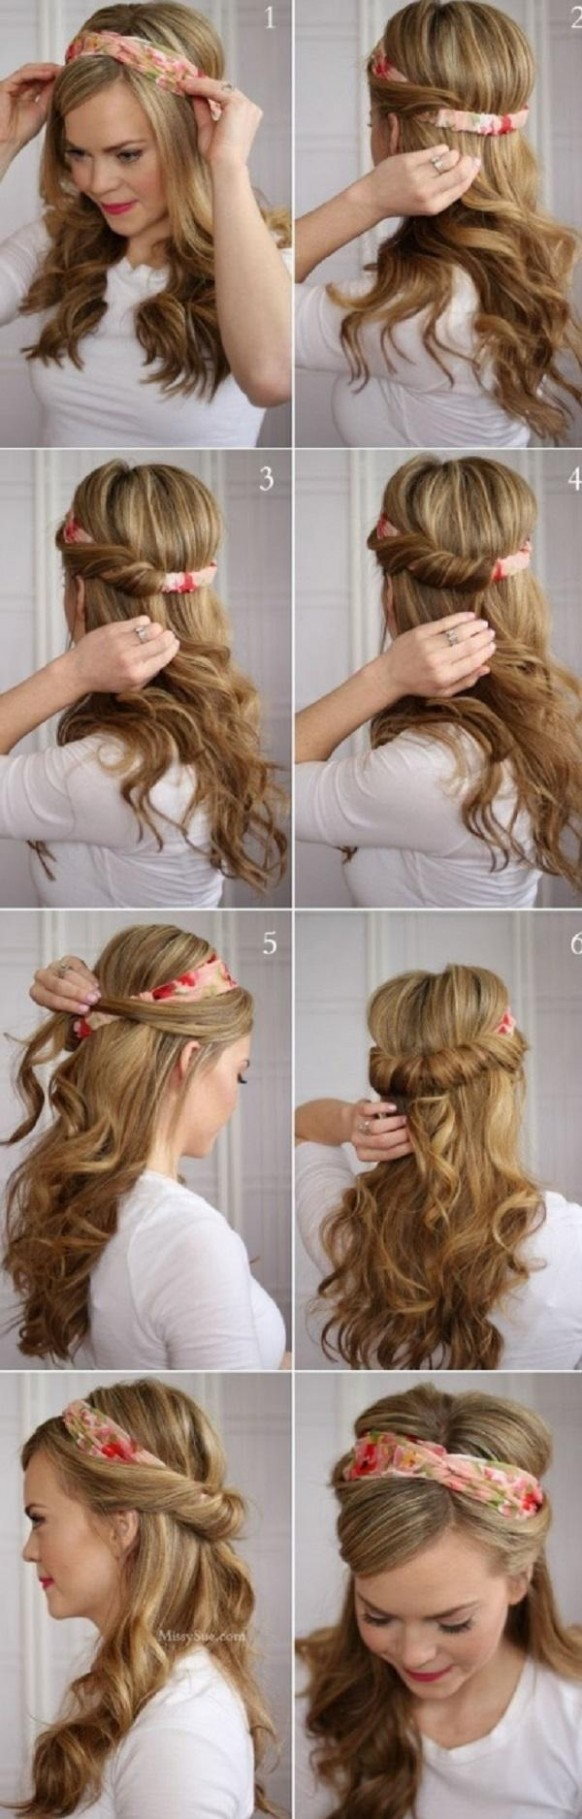 12 Easy Hairstyles For Long Hair Cuded Easy Hairstyles For Girls Long Hair